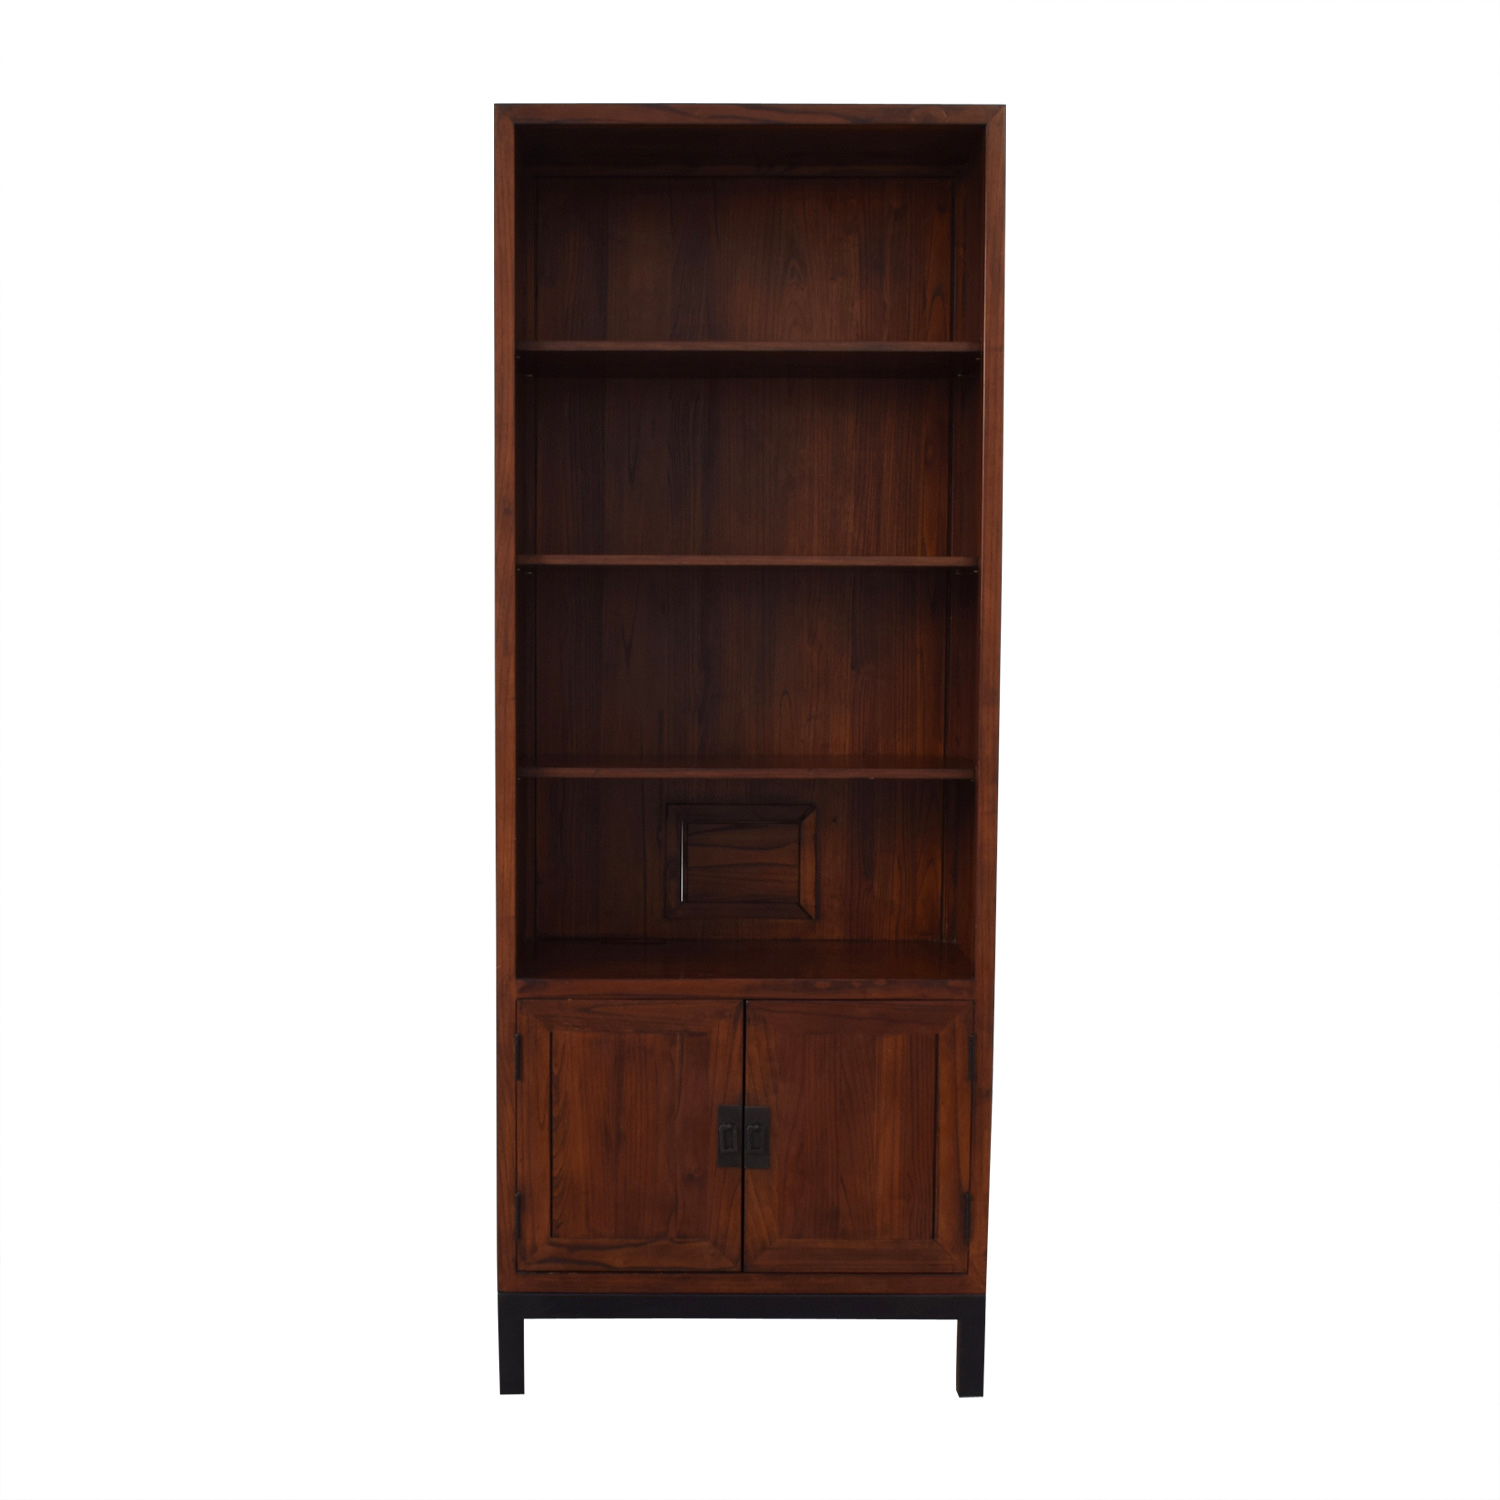 buy Room & Board By Maria Yee Bookcase With Doors & Drawers Room & Board Storage